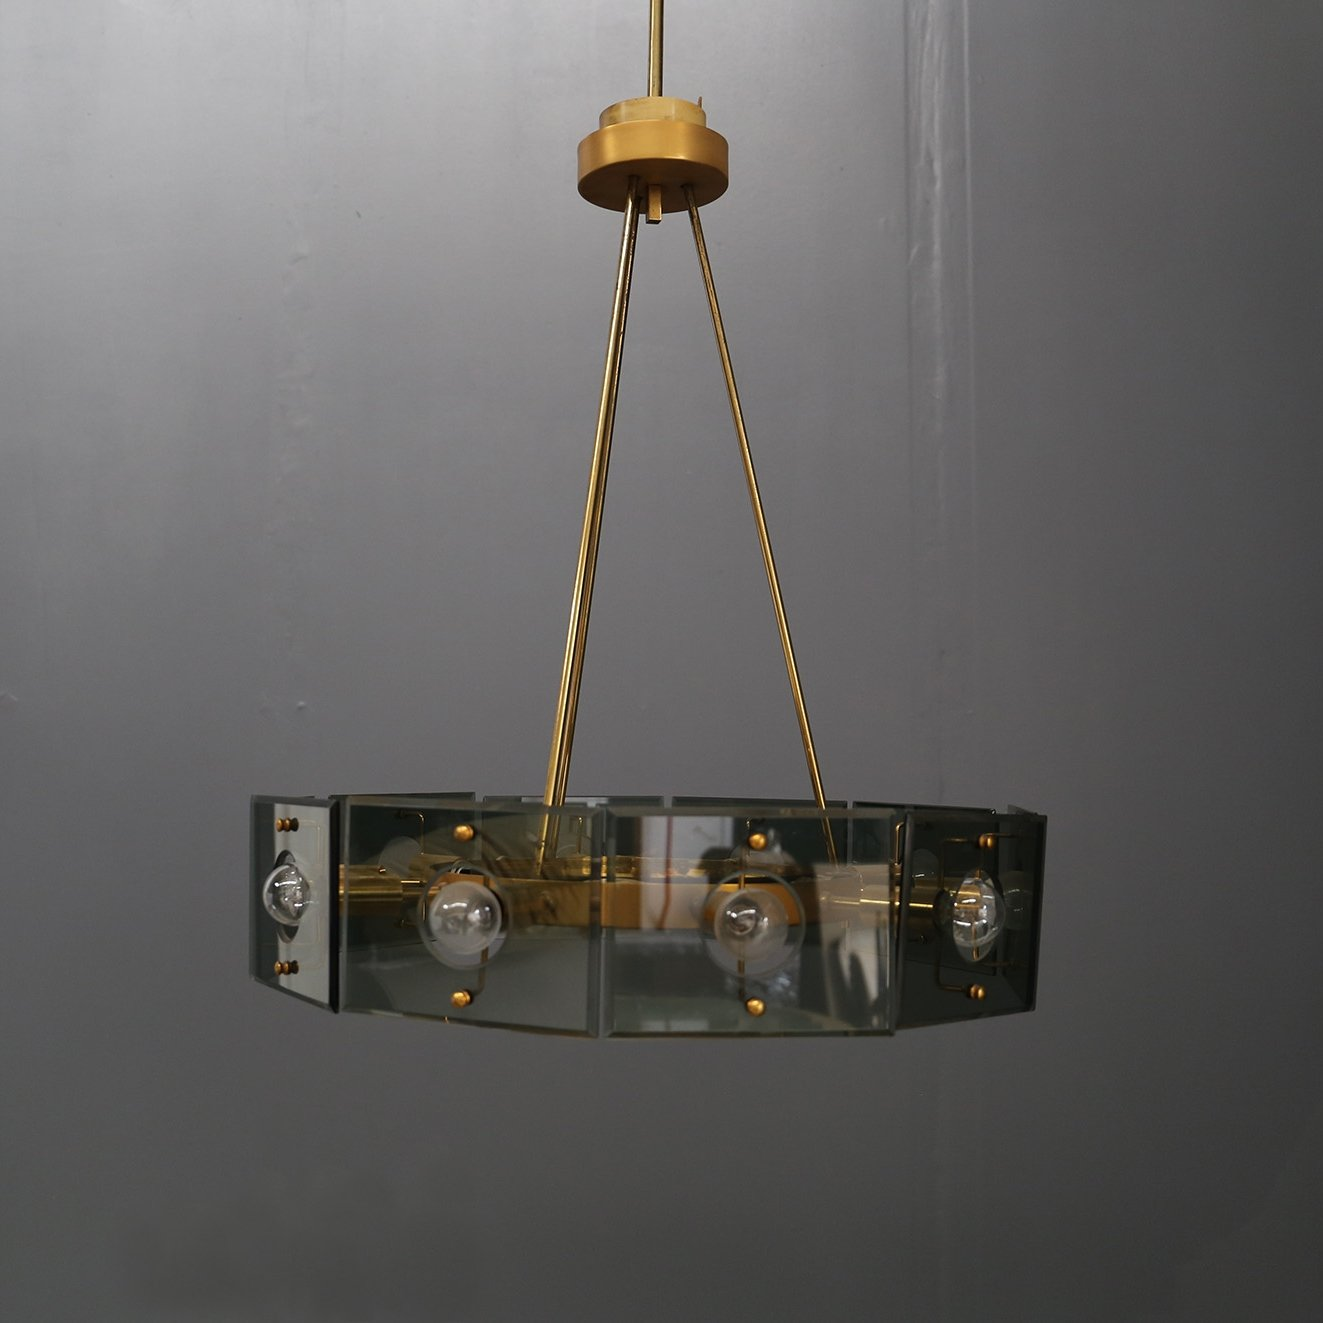 Chandelier With 10 Lights By Gino Paoldo For Fontana Arte 1950s